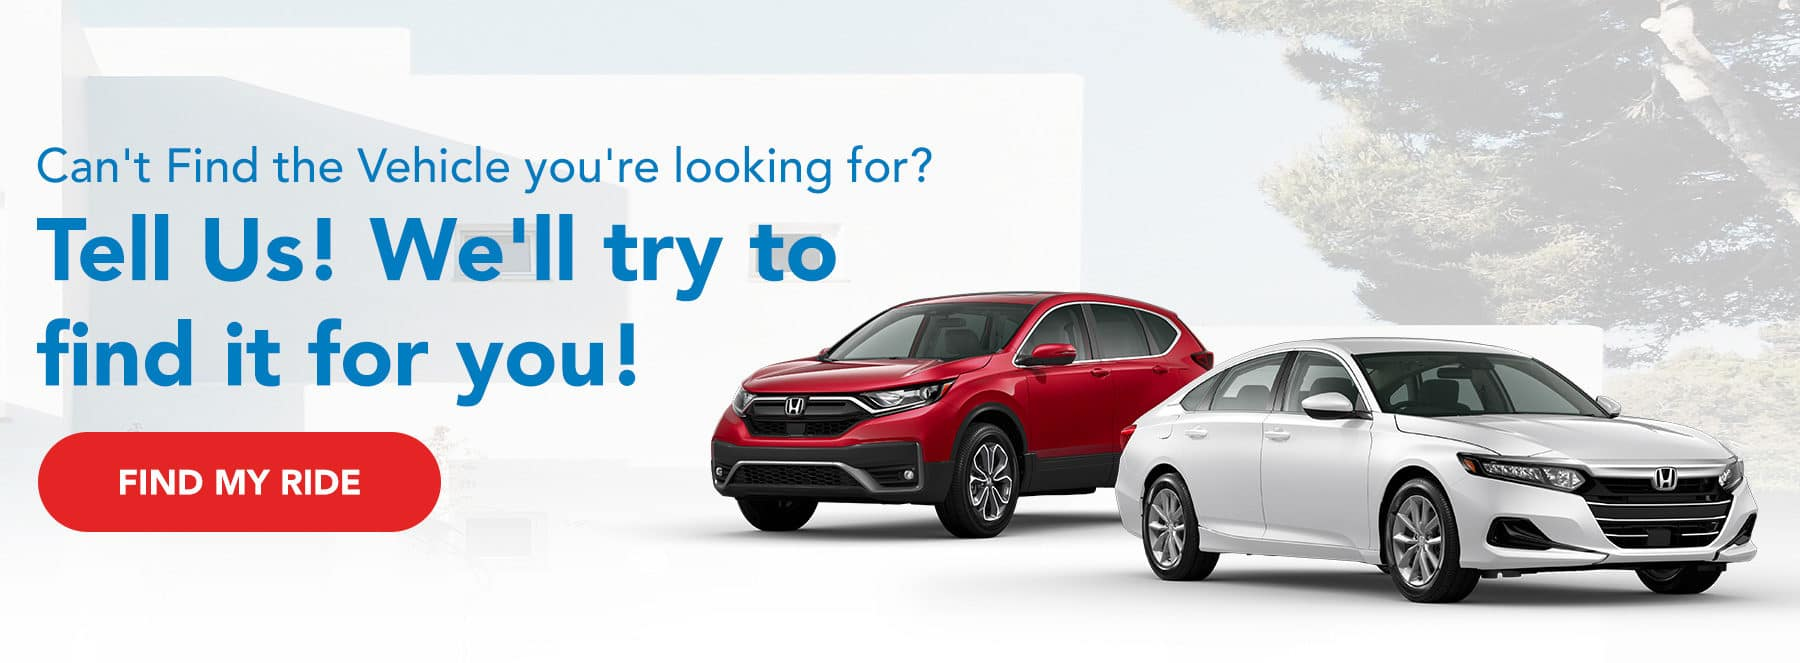 Can't Find the Vehicle you're looking for? Tell Us! We'll try to find it for you!